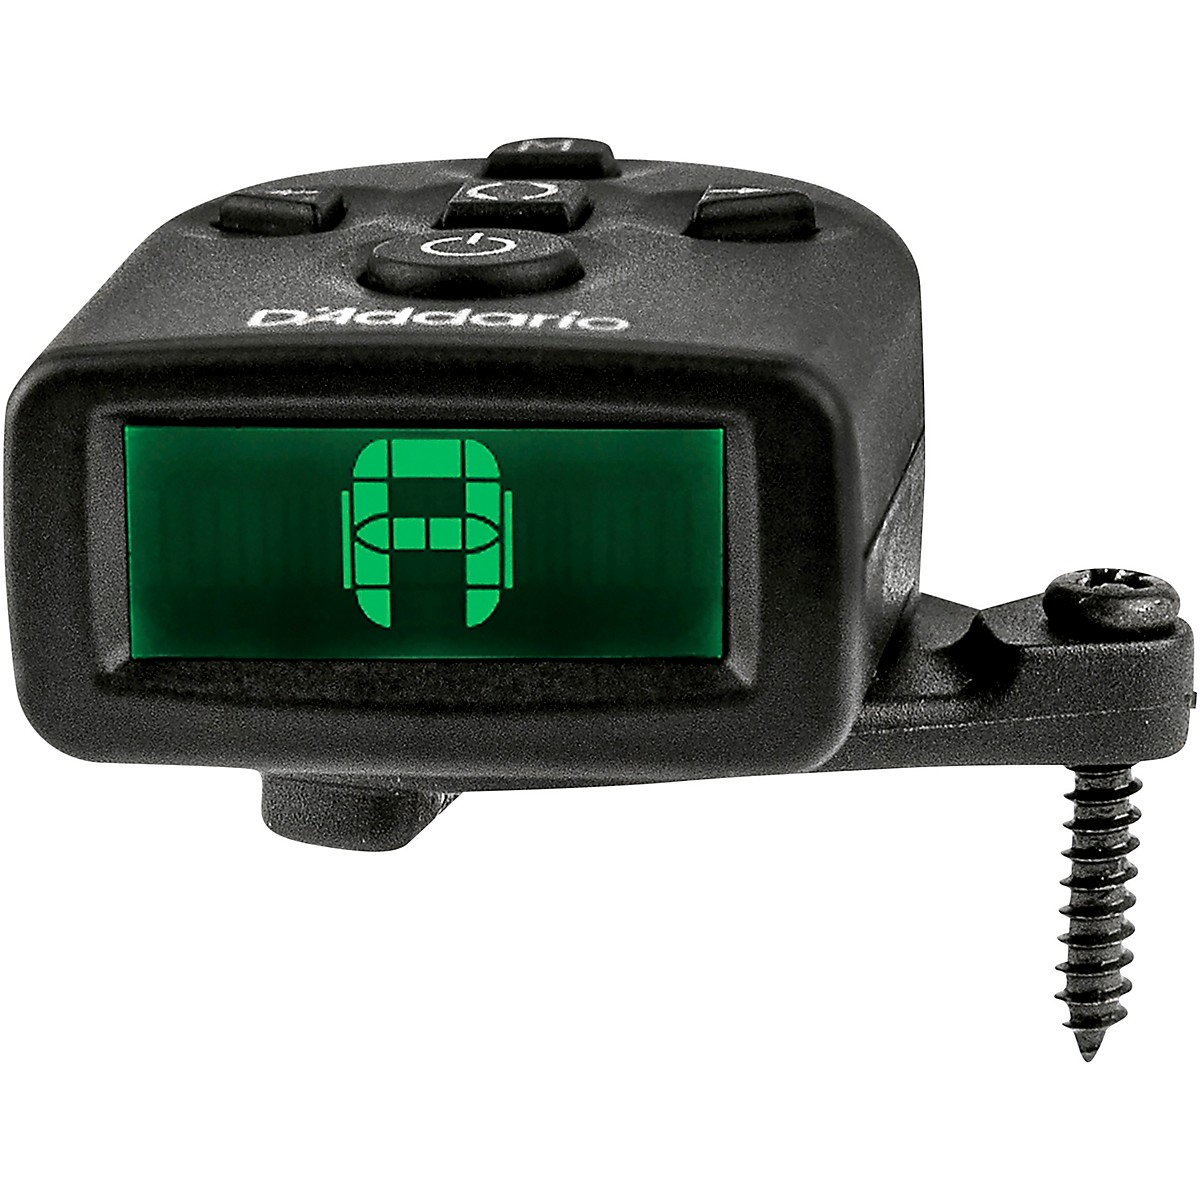 D'Addario Planet Waves NS Micro Clip Free Tuner